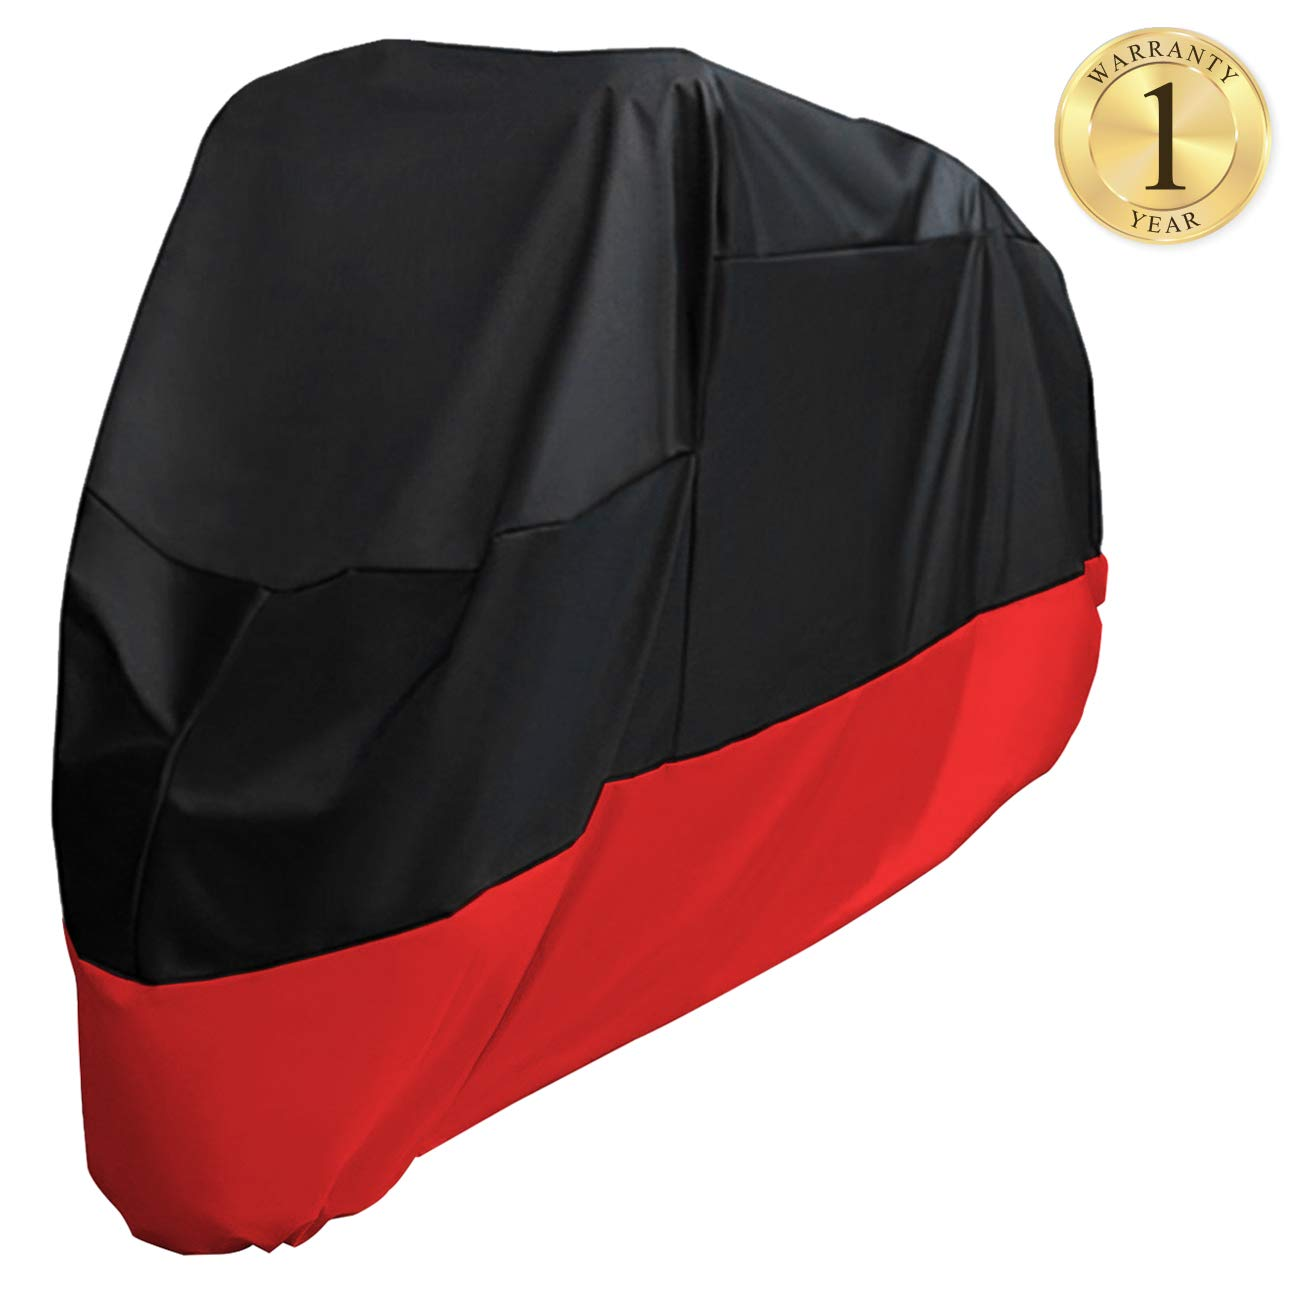 Favoto Motorcycle Cover All Season Universal Premium Quality 190T Waterproof Sun Outdoor Protection Durable with Storage Bag Windproof Buckle Fits up to 265 cm/104 inch Motorcycle Vehicle Cover Classic Color FT0091_US